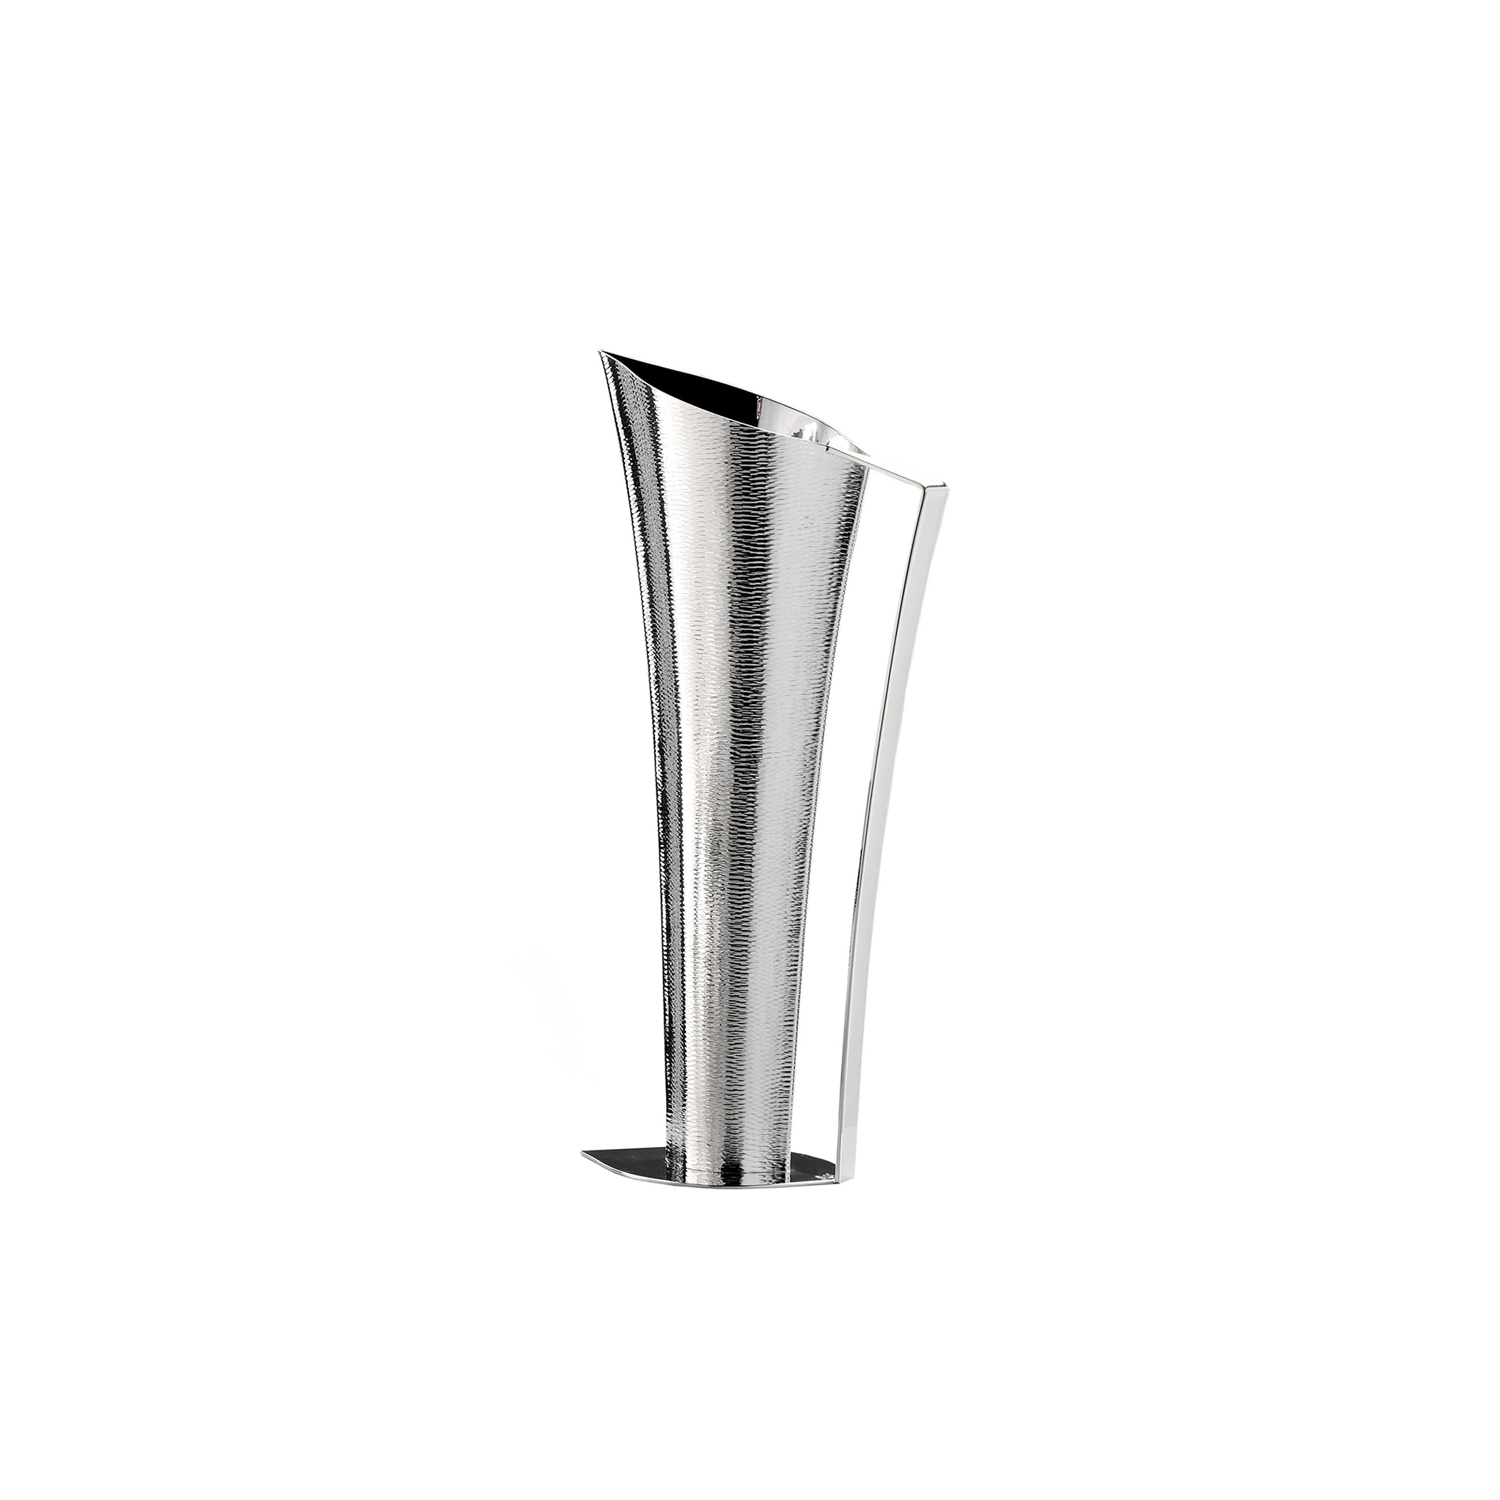 Ermes Pitcher - Sculptural pitcher crafted in a silver-plated alloy with a stunning texture.   Matter of Stuff